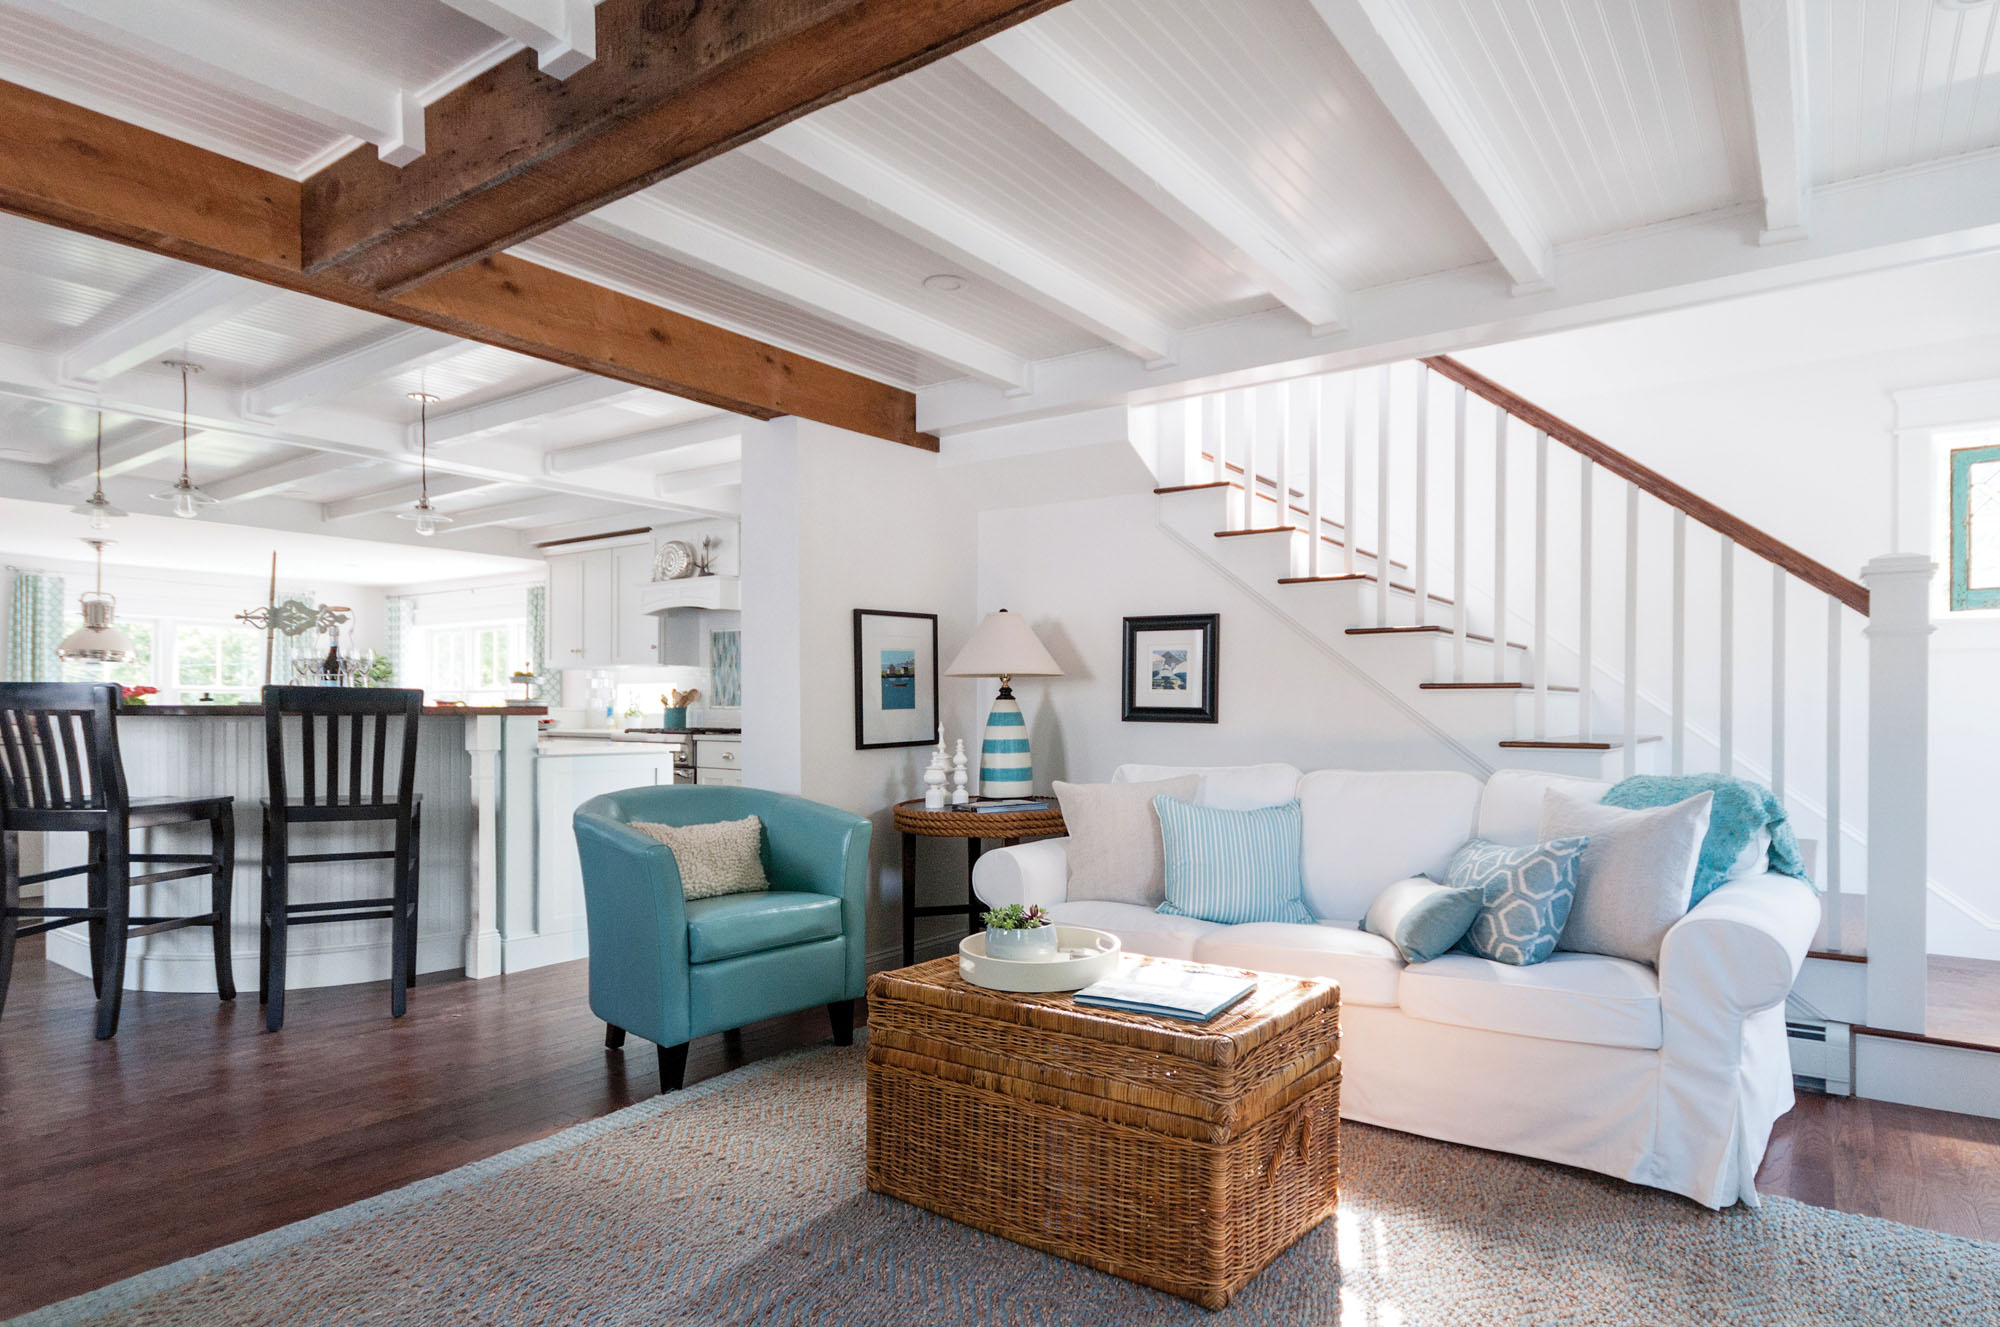 Ceiling beams and exposed joists in living room